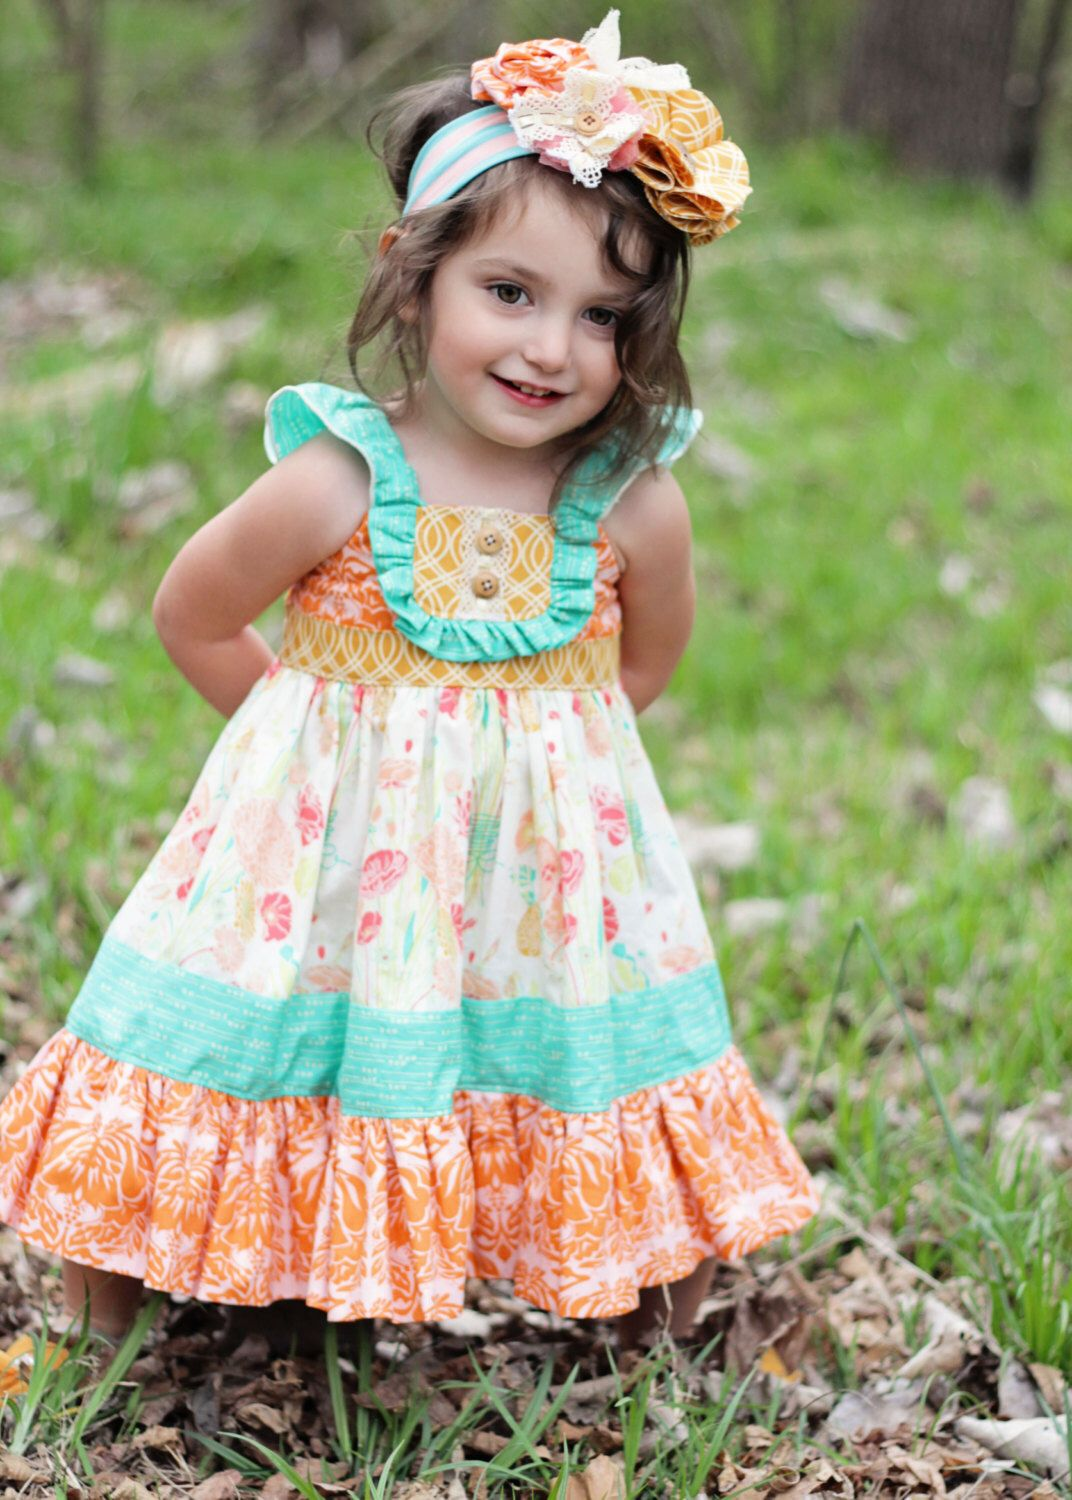 Pin By Casey Toner On Baby Food Baby Dress Girls